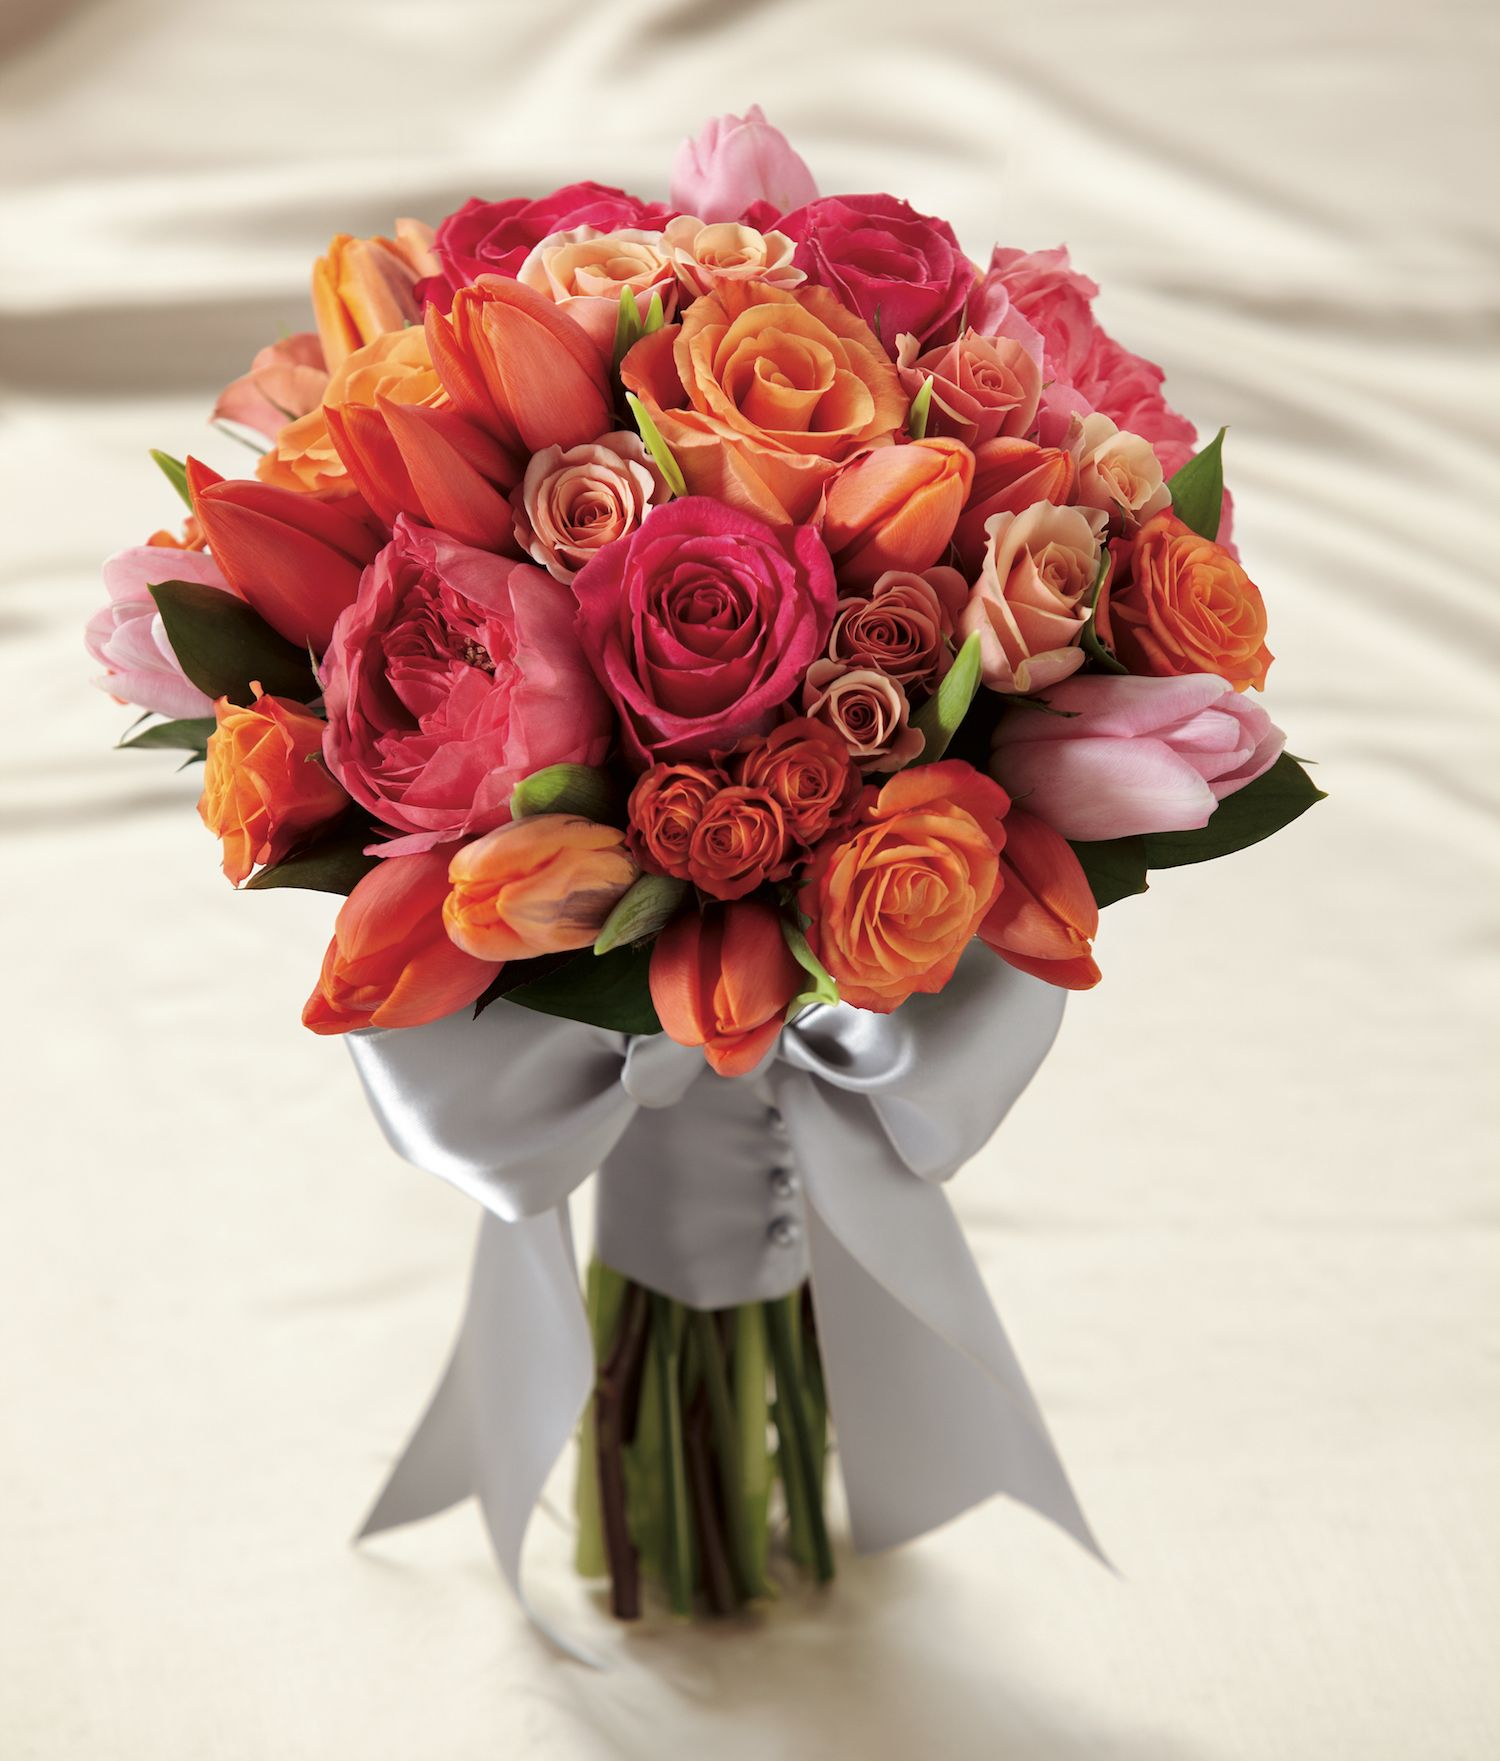 The Sunset Dream Bouquet bursts with sun-drenched color to captivate ...